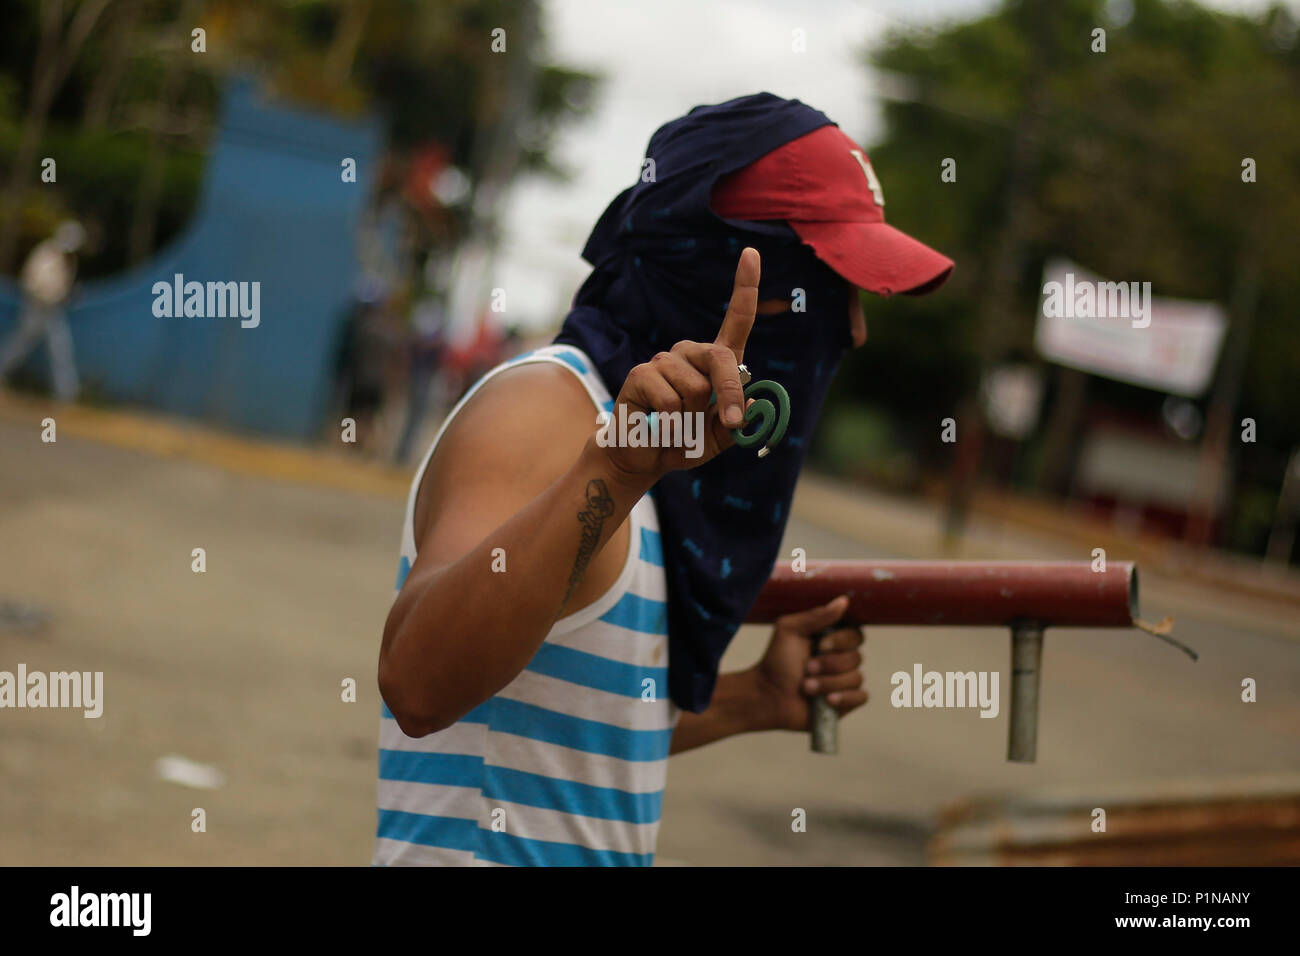 Jinotepe, Nicaragua. 12thJune, 2018. A protester reacts with a handmade weapon during clashes with the National Police, in the town of Jinotepe, Nicaragua, 12 June 2018. Jinotepe, a picturesque town south of the Nicaraguan capital, today became the scene of war and a kind of state of siege by violent clashes against the government of Daniel Ortega. Credit: Rodrigo Sura/EFE/Alamy Live News - Stock Image